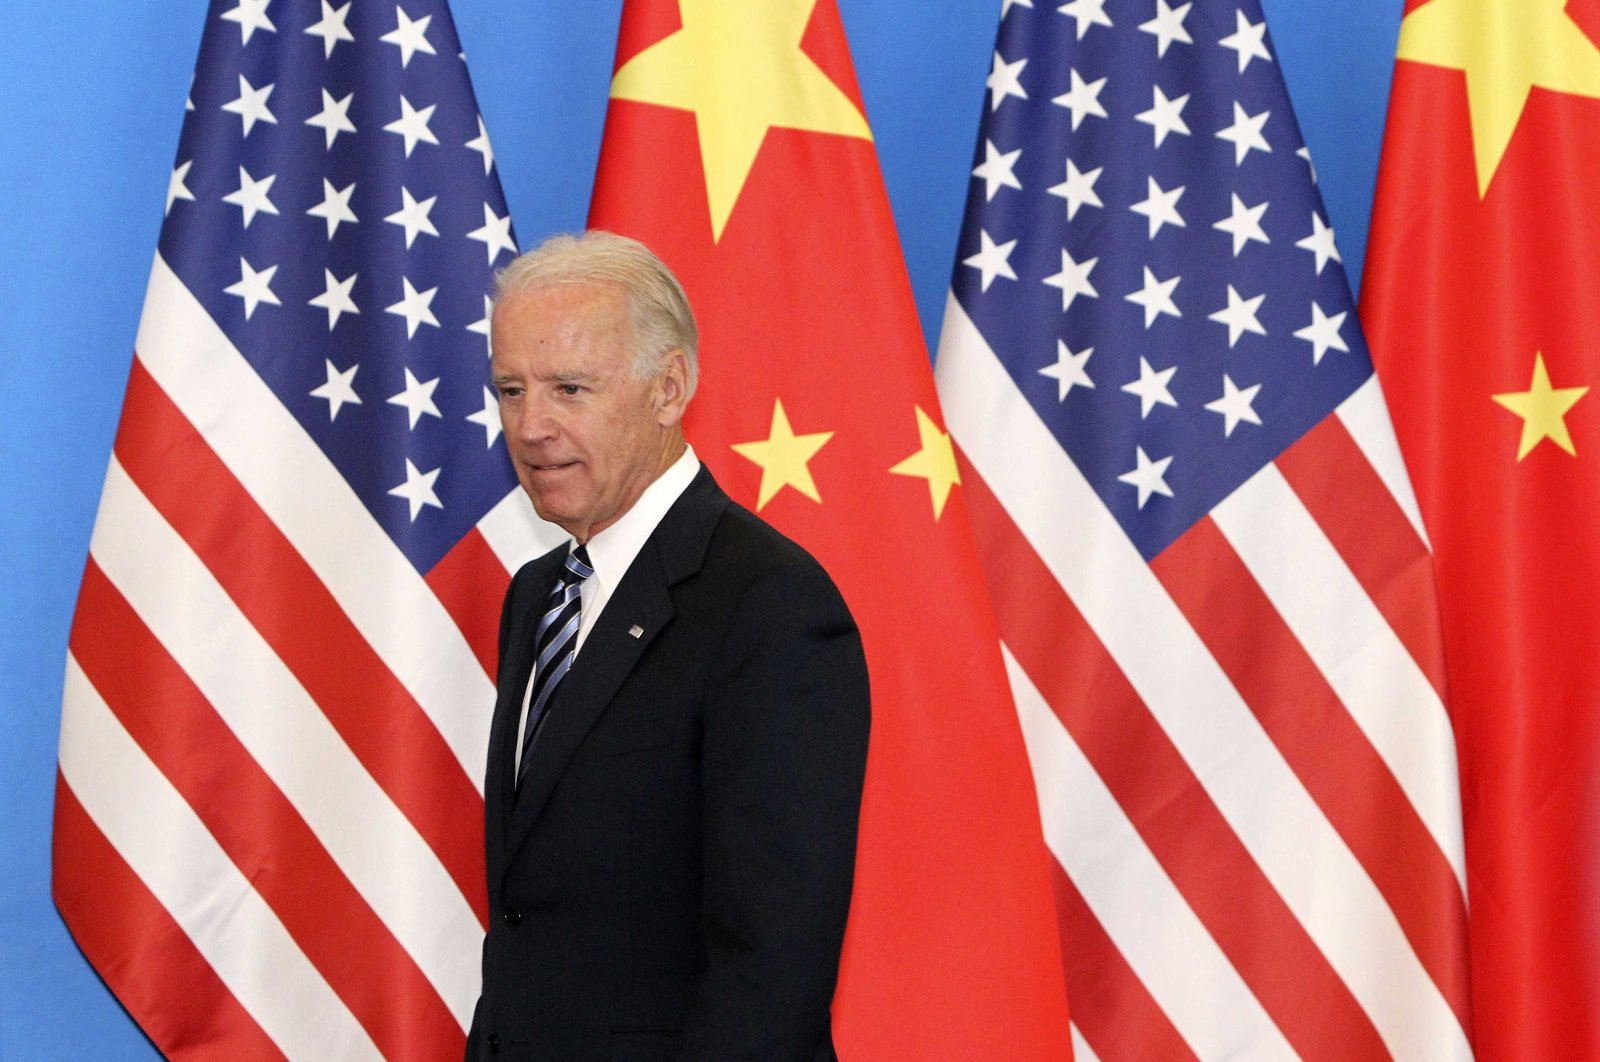 Then-U.S. Vice President Joe Biden arrives with his Chinese counterpart Xi Jinping (not pictured) at a China-U.S. Business Dialogue in Beijing, China, Aug. 19, 2011. (Reuters Photo)